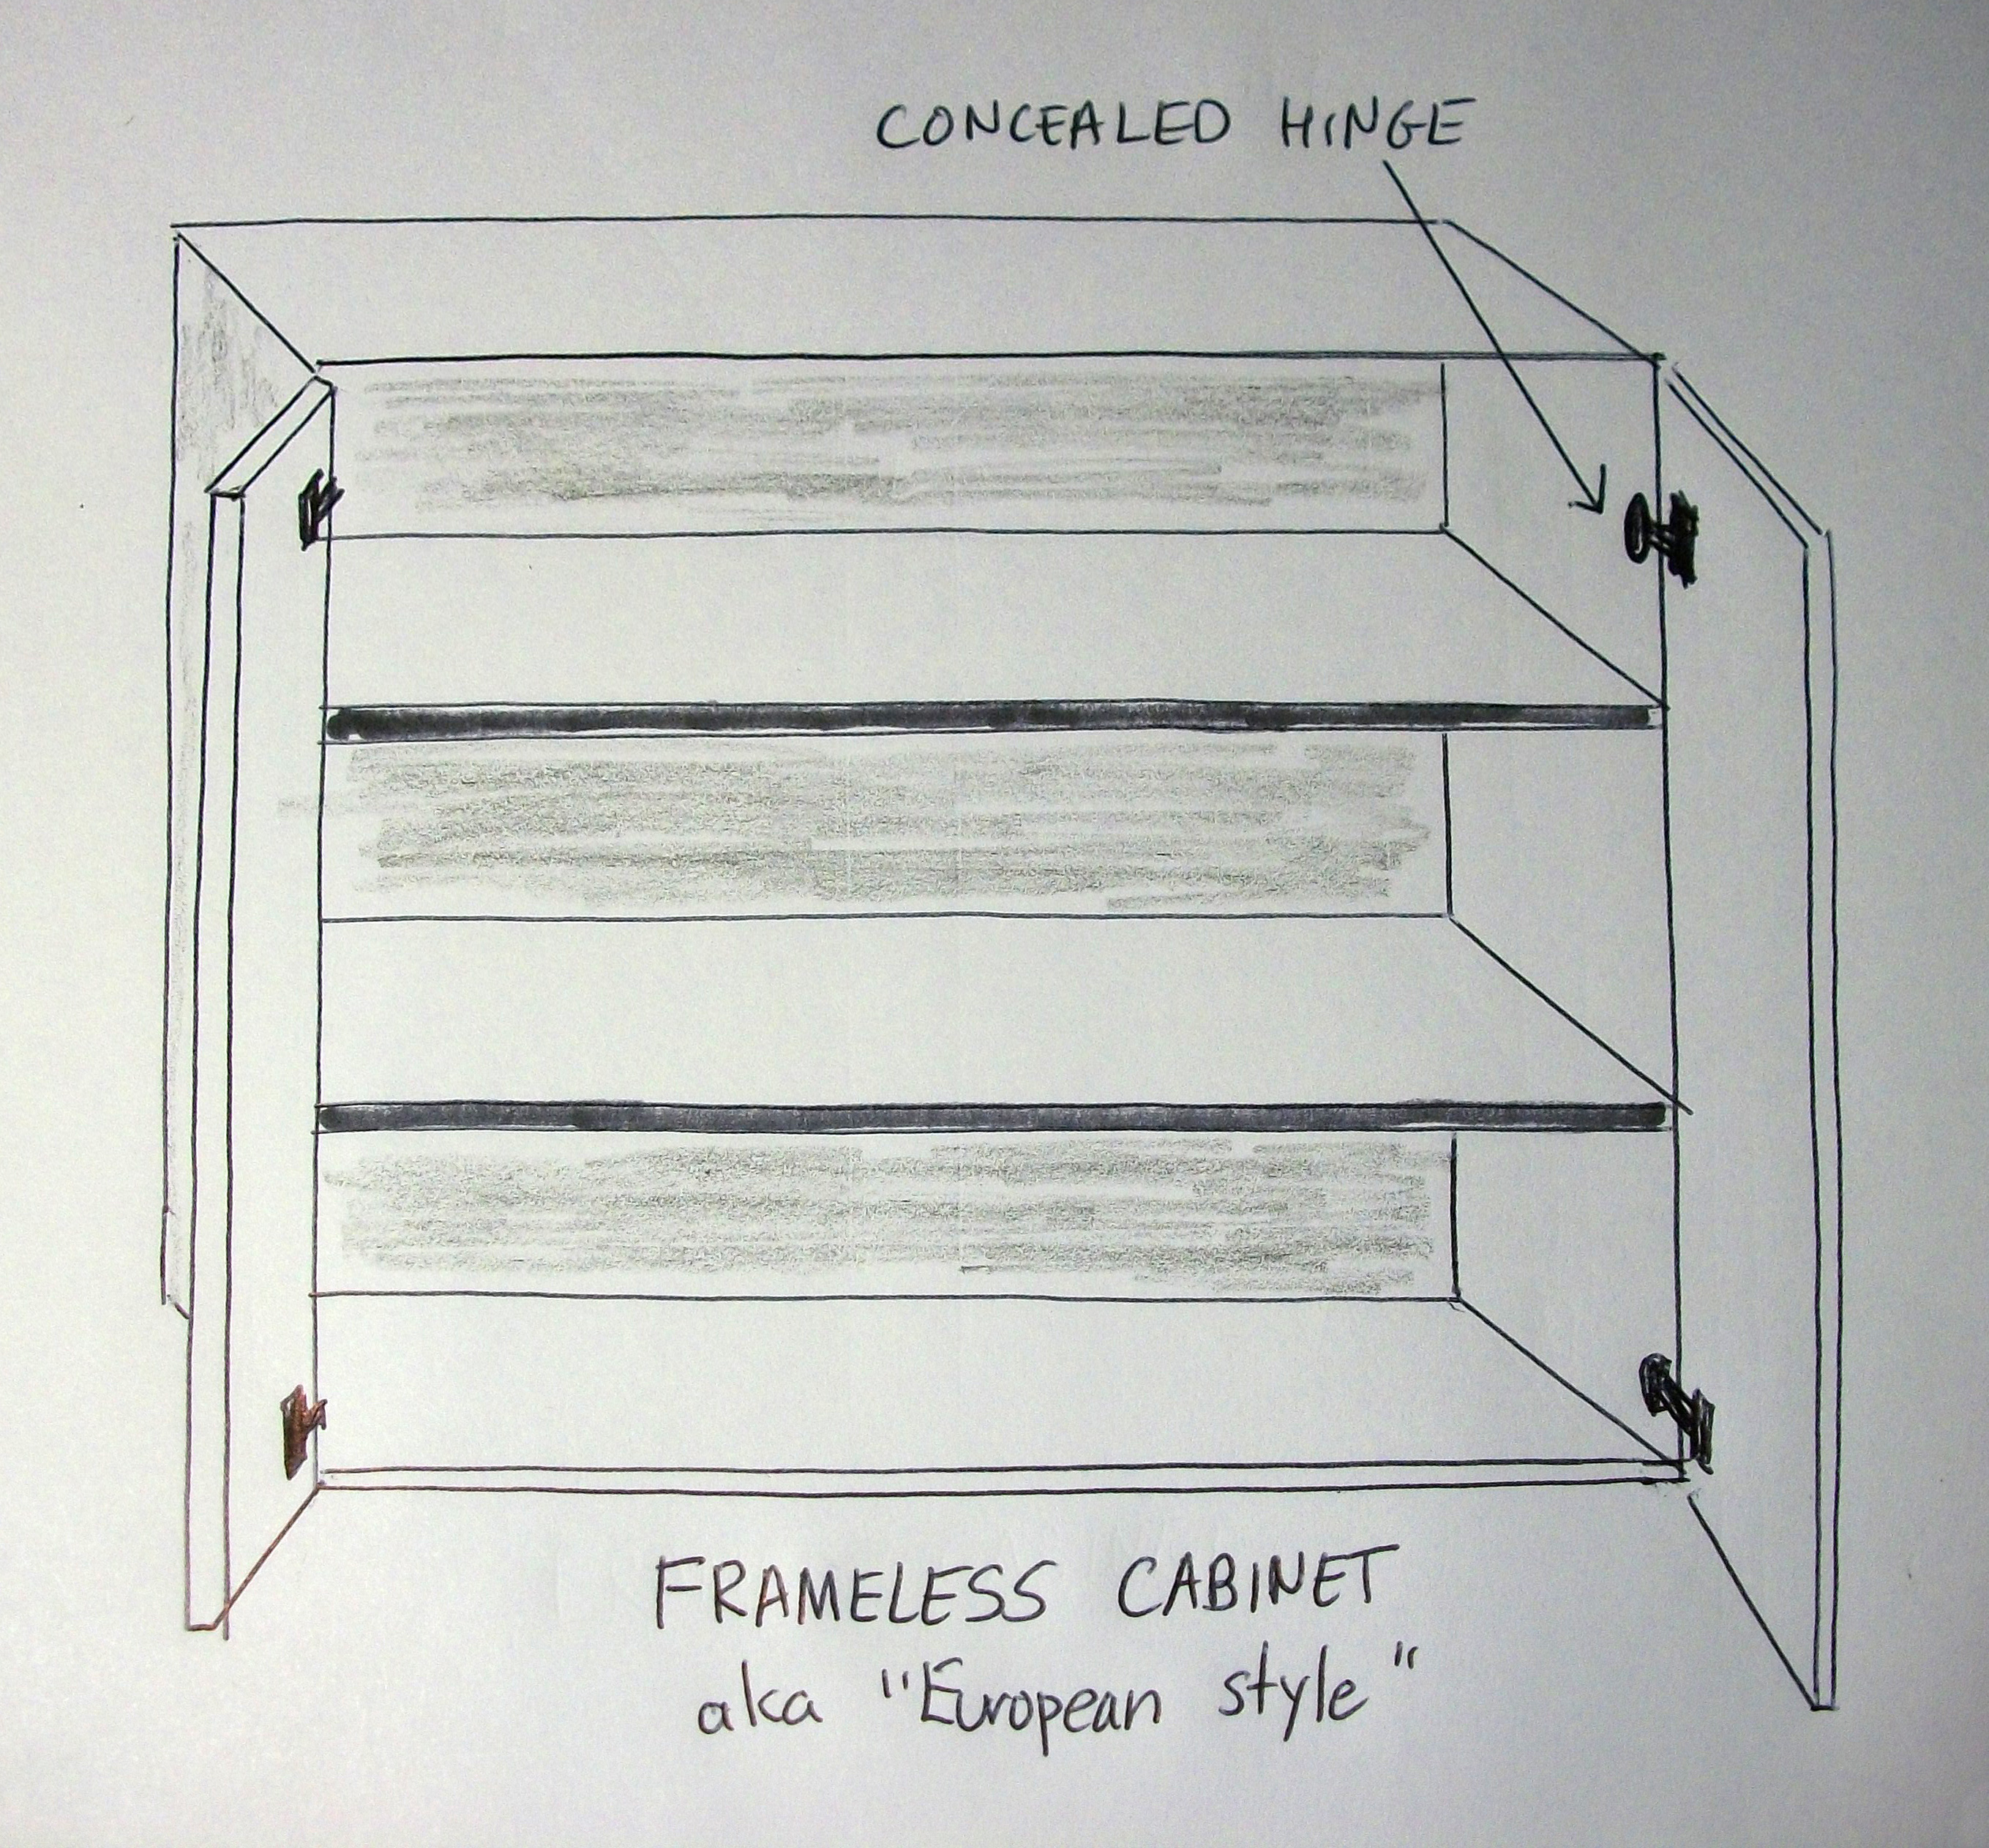 Frameless Kitchen Cabinets: File:Frameless Kitchen Cabinets.jpg